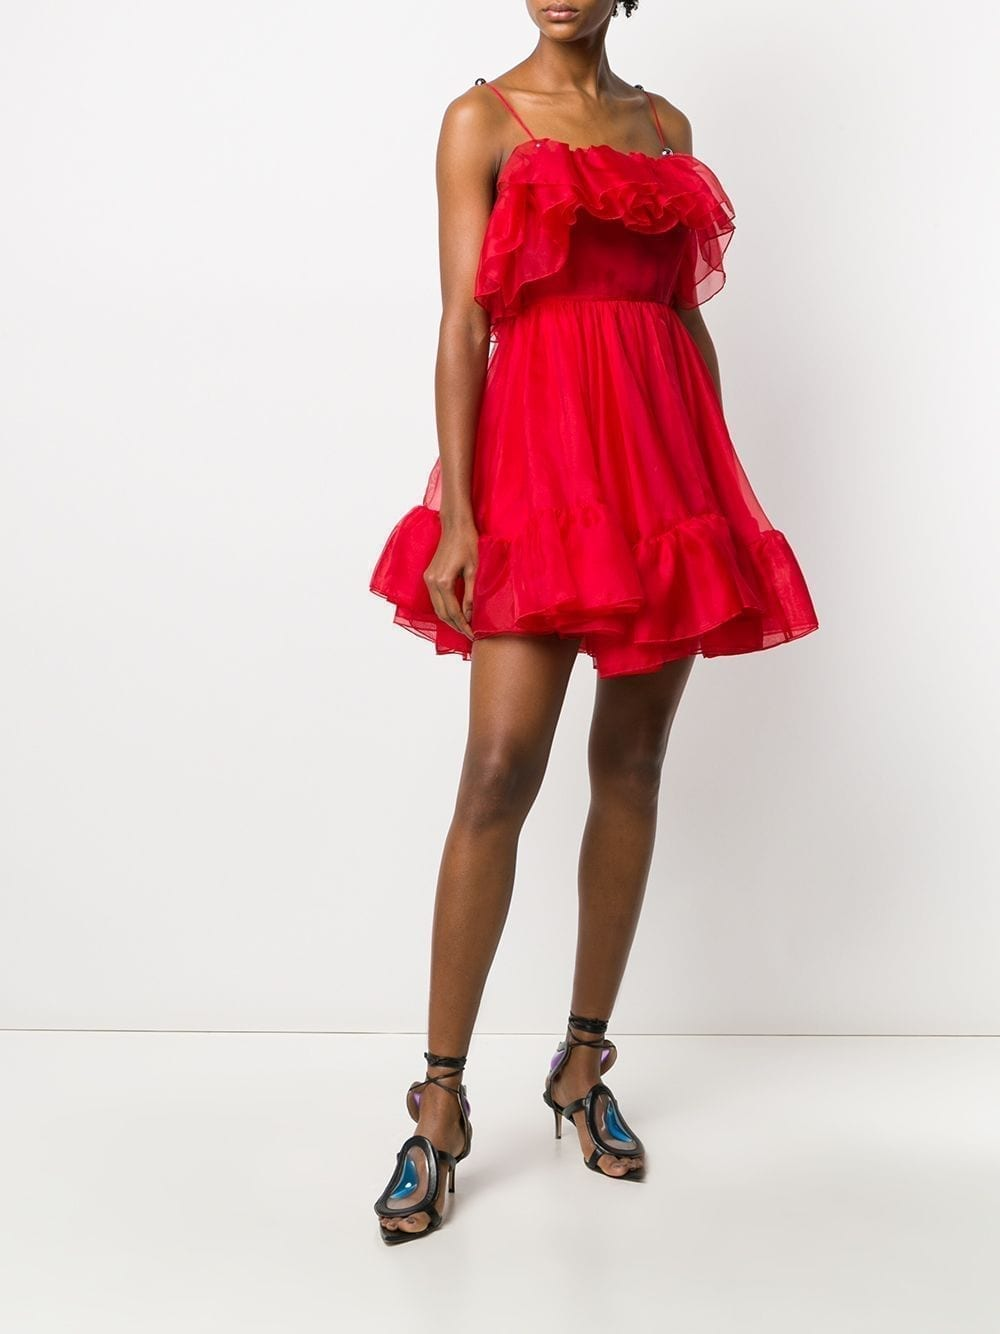 CHRISTOPHER KANE Organza Frill Mini Dress